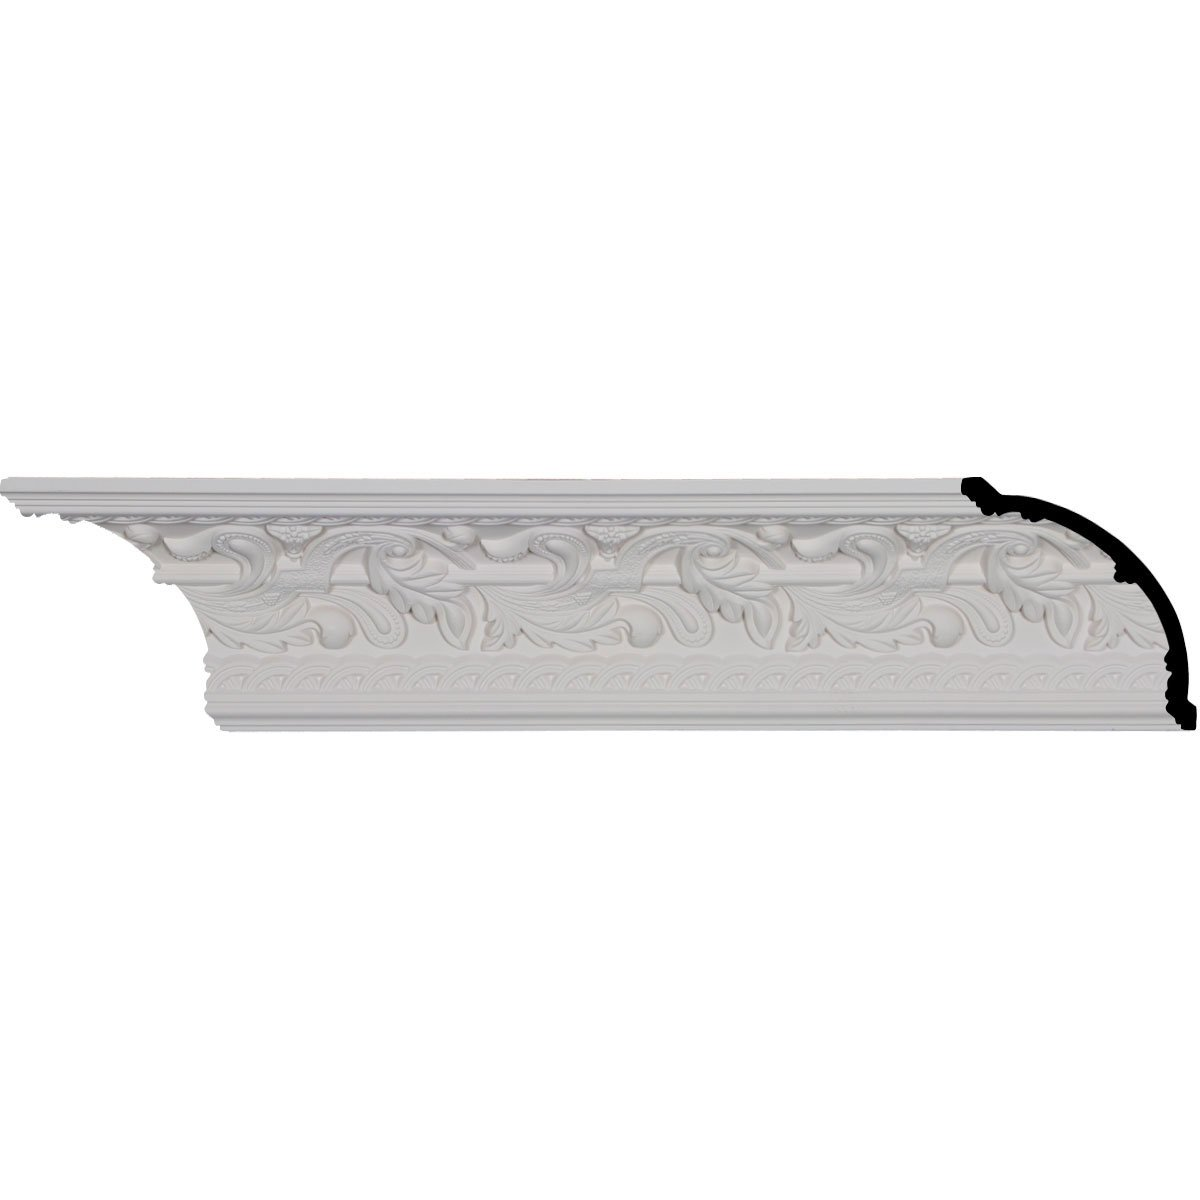 4 3/4'' H x 4 3/4'' P x 6 3/4'' F x 94 1/2'' L, (6 7/8'' Repeat), Kinsley Crown Moulding (2-Pack)